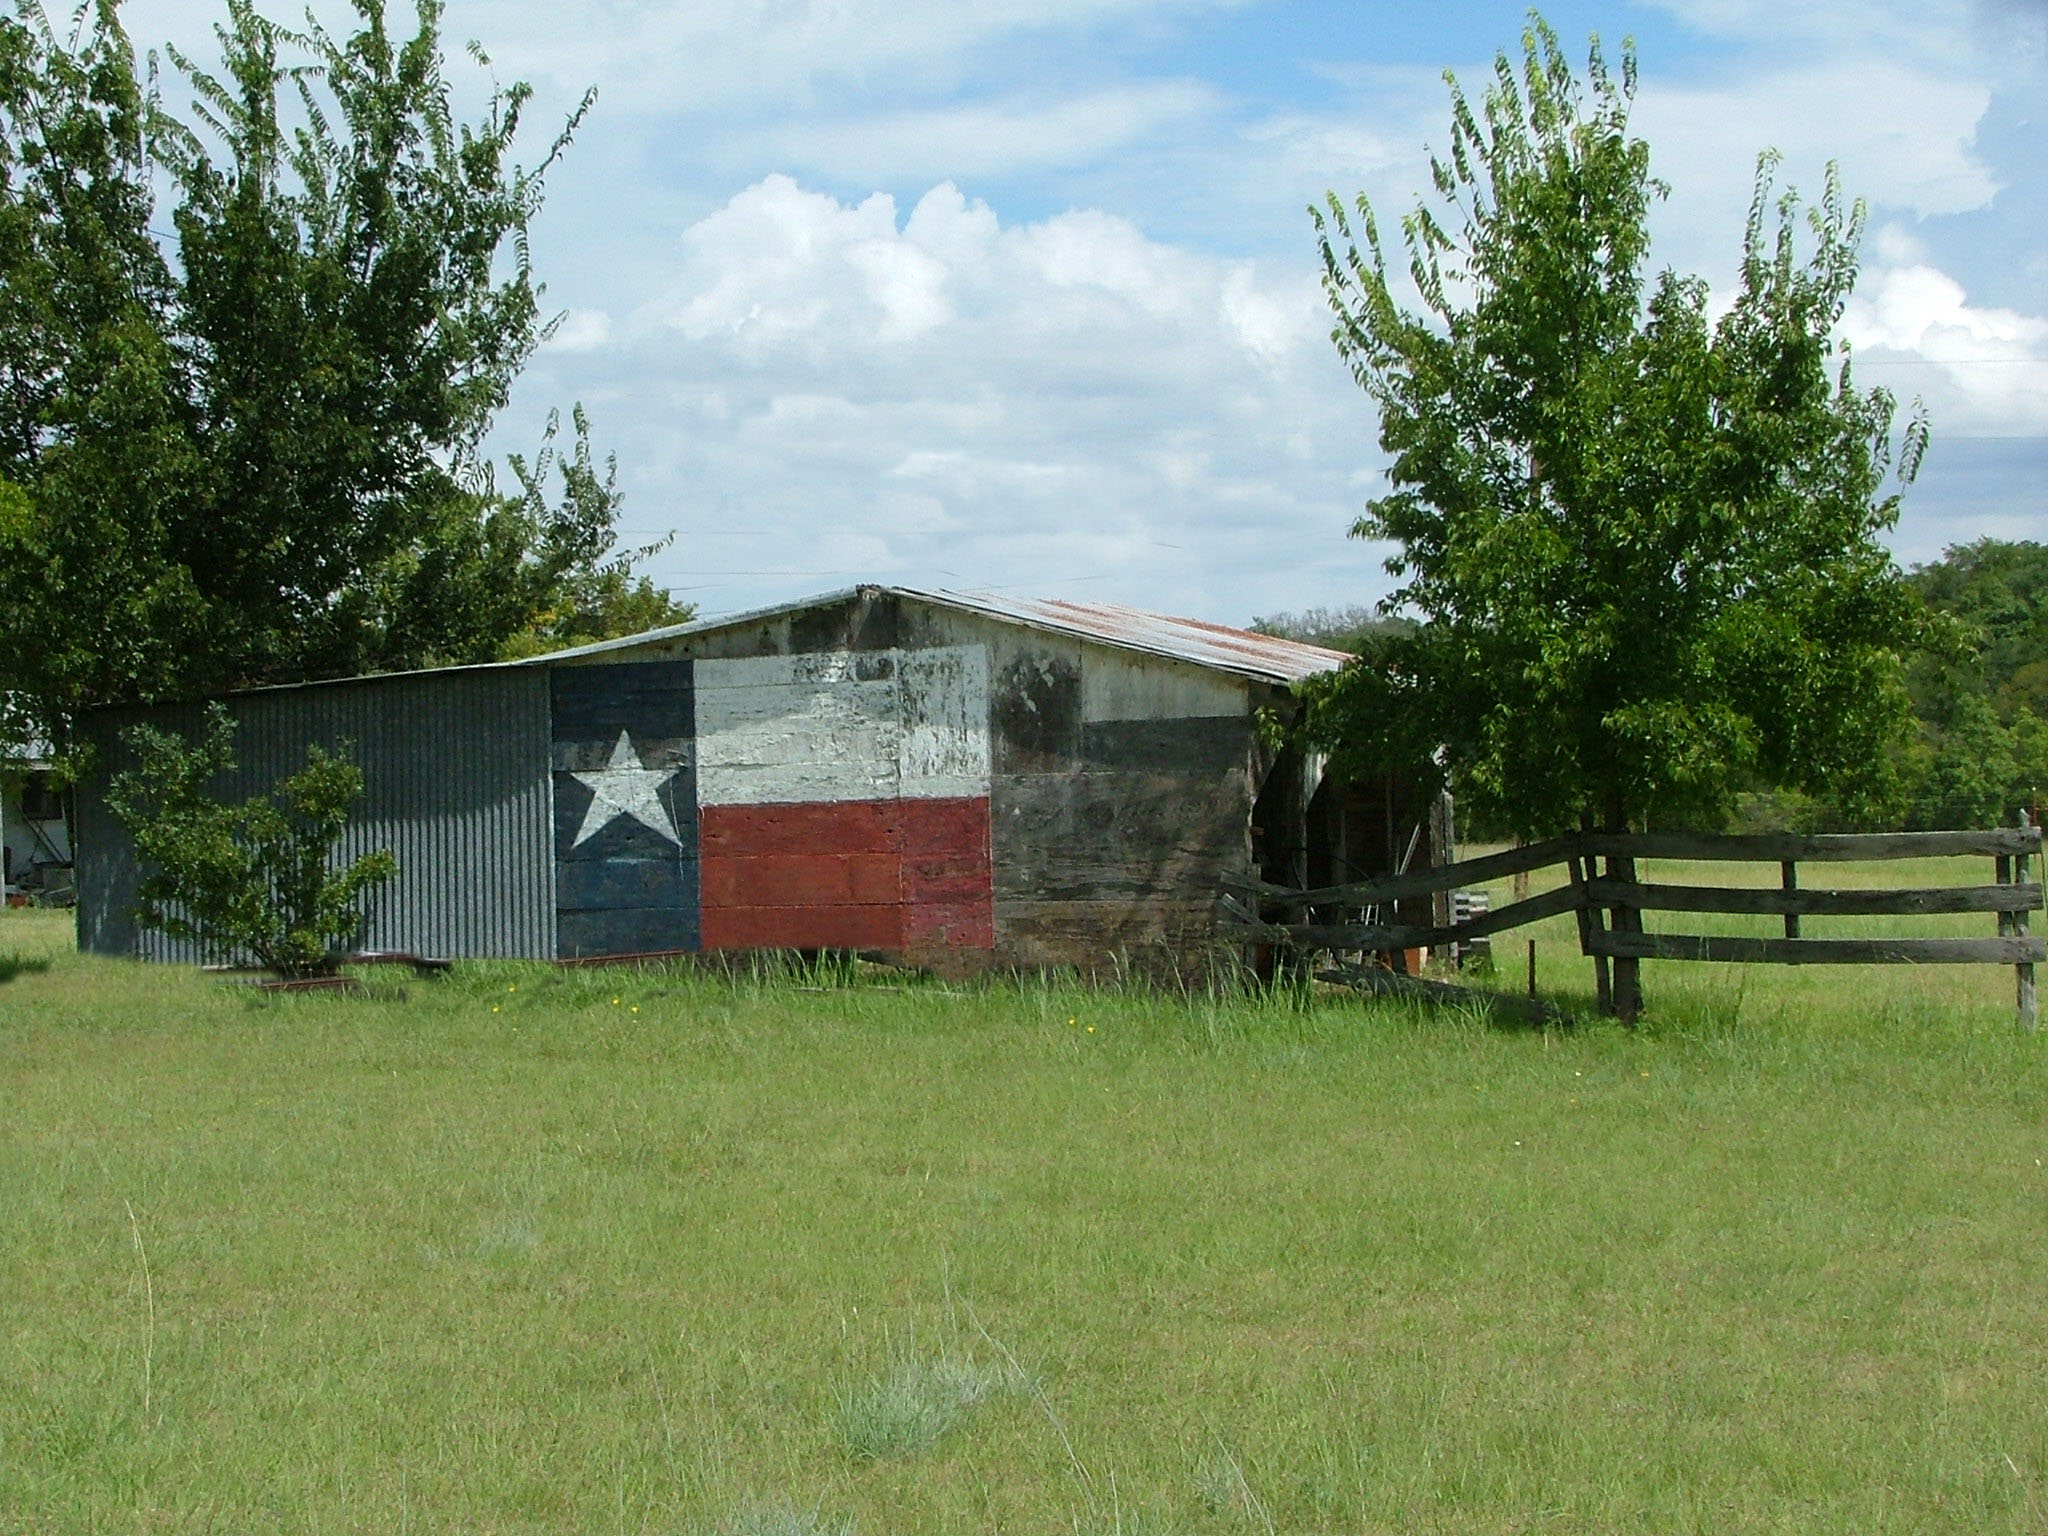 Texas Flag Barn Rustic Images Foundmyself